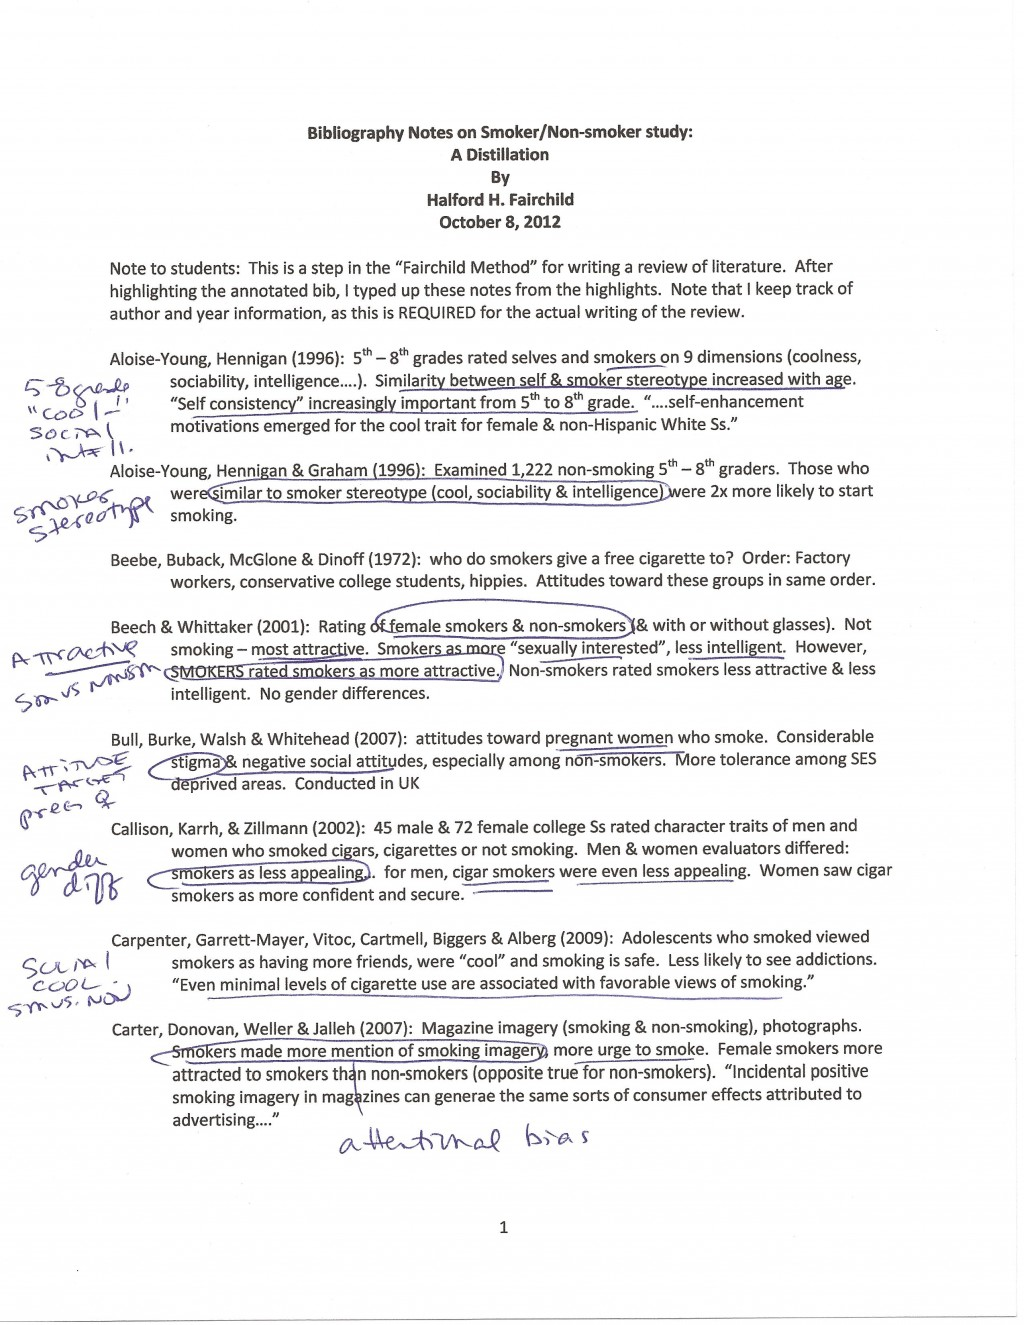 003 Annotated Bibliography Research Paper Sample Wonderful Large